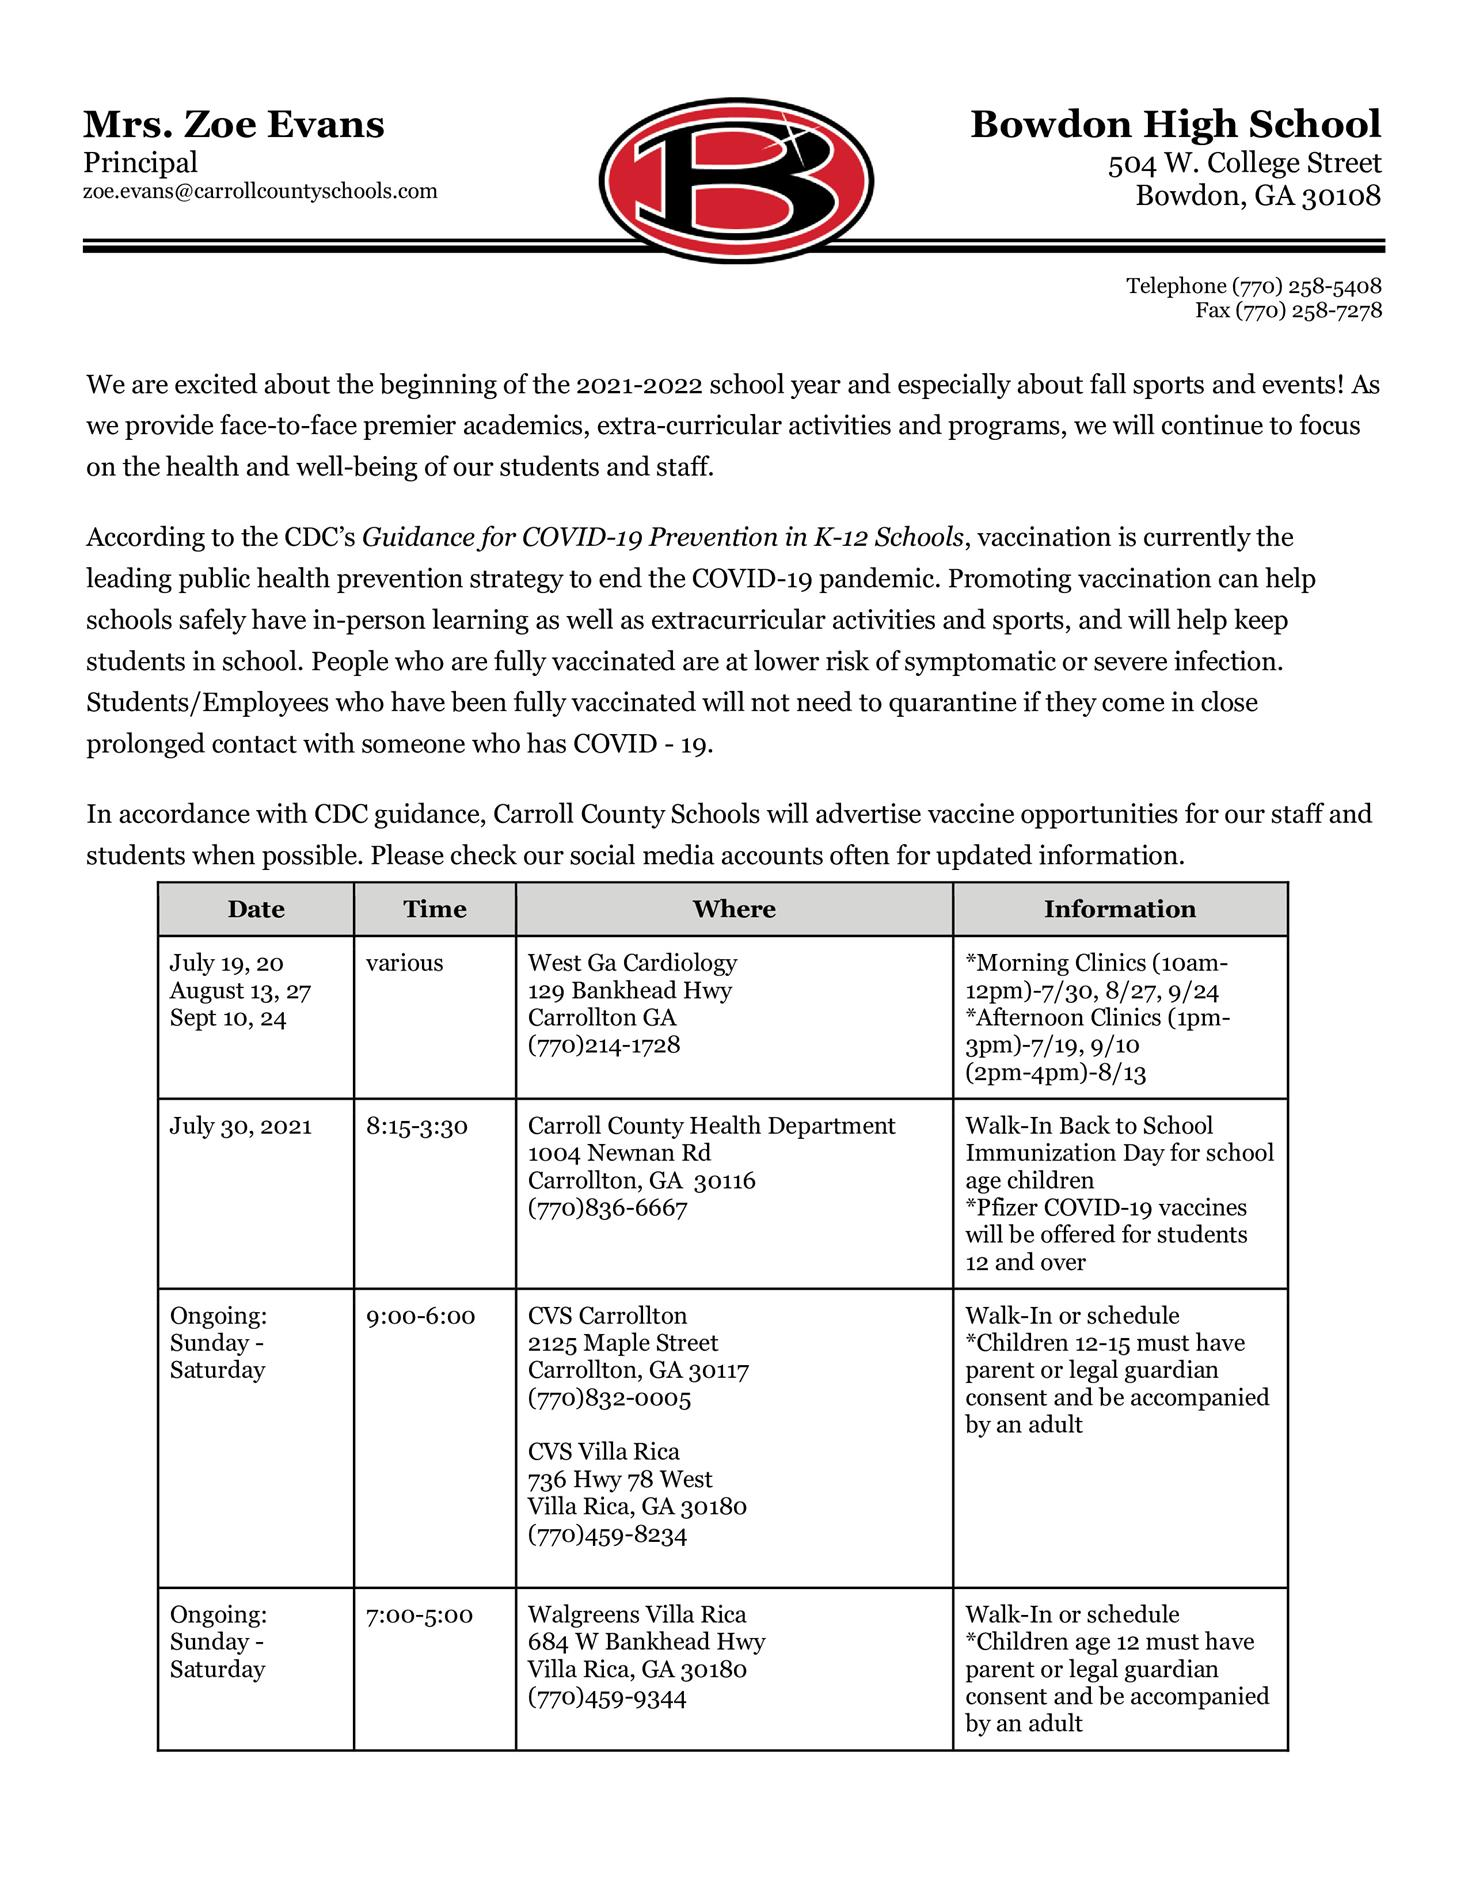 letter from Carroll County Schools about Covid vaccination sites